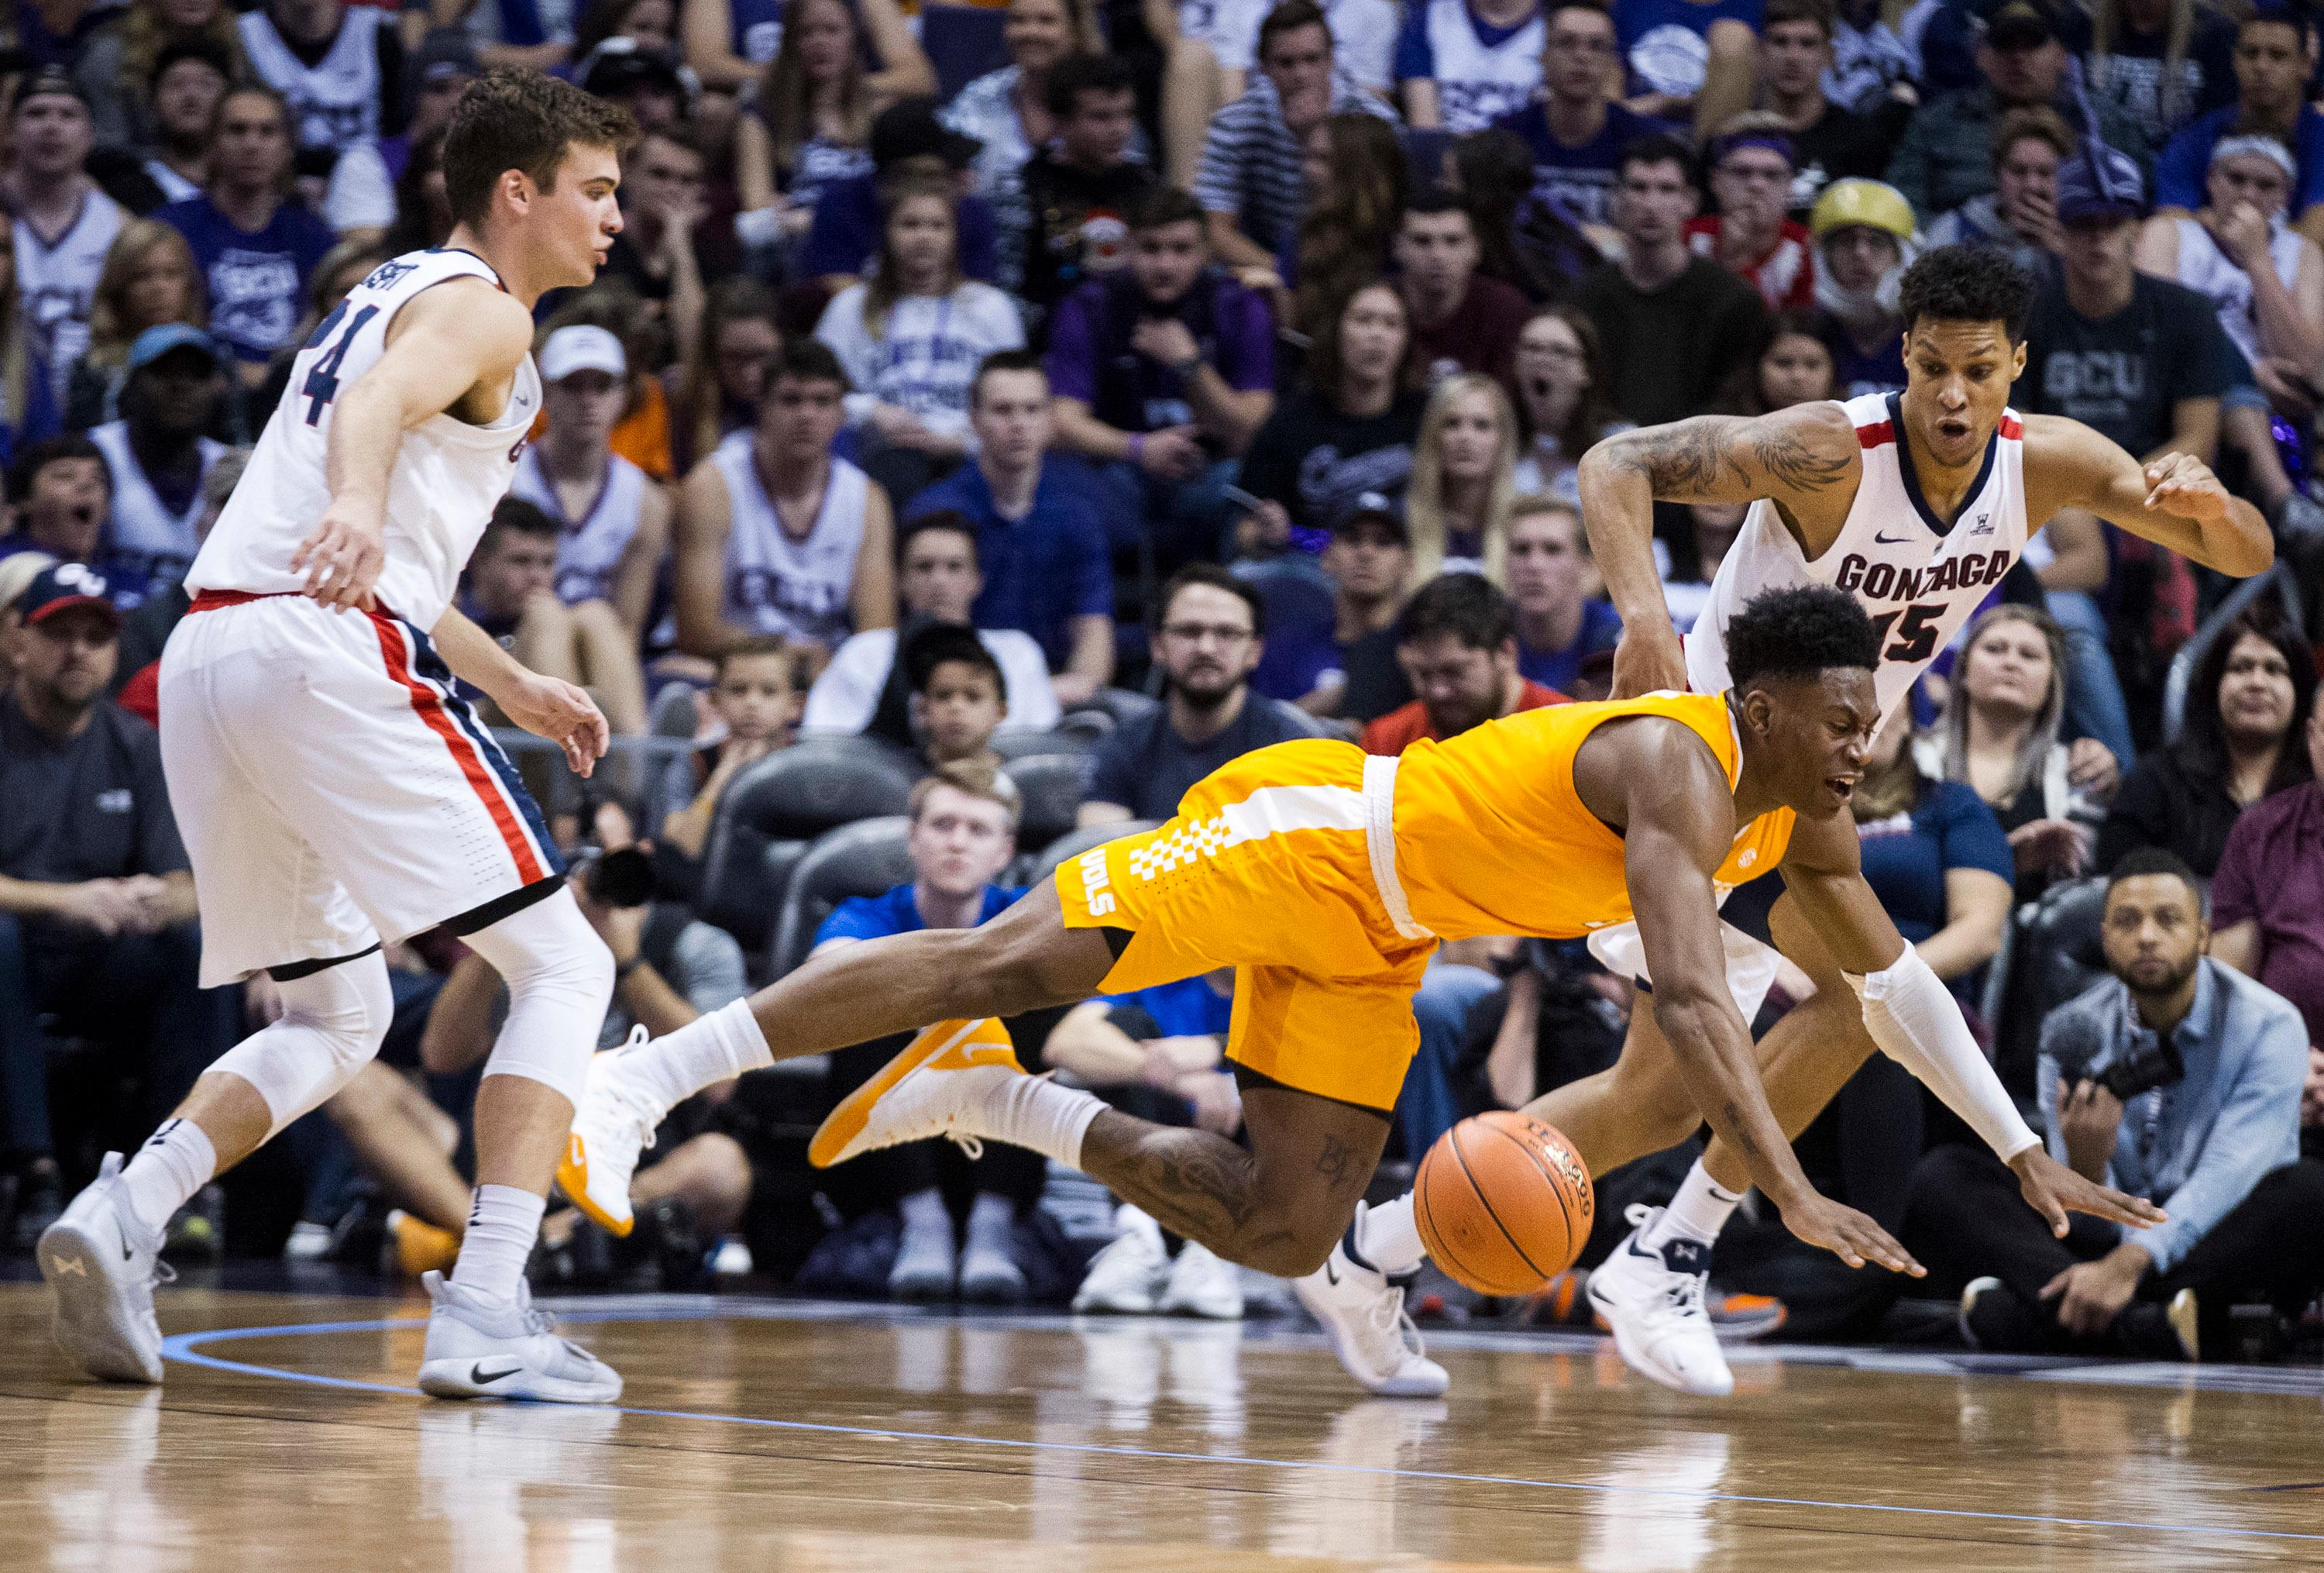 Tennessee's Admiral Schofield (5) loses the ball against Gonzaga's Corey Kispert (24) and Brandon Clarke (15) during the first half of an NCAA college basketball game Sunday, Dec. 9, 2018, in Phoenix. (AP Photo/Darryl Webb)